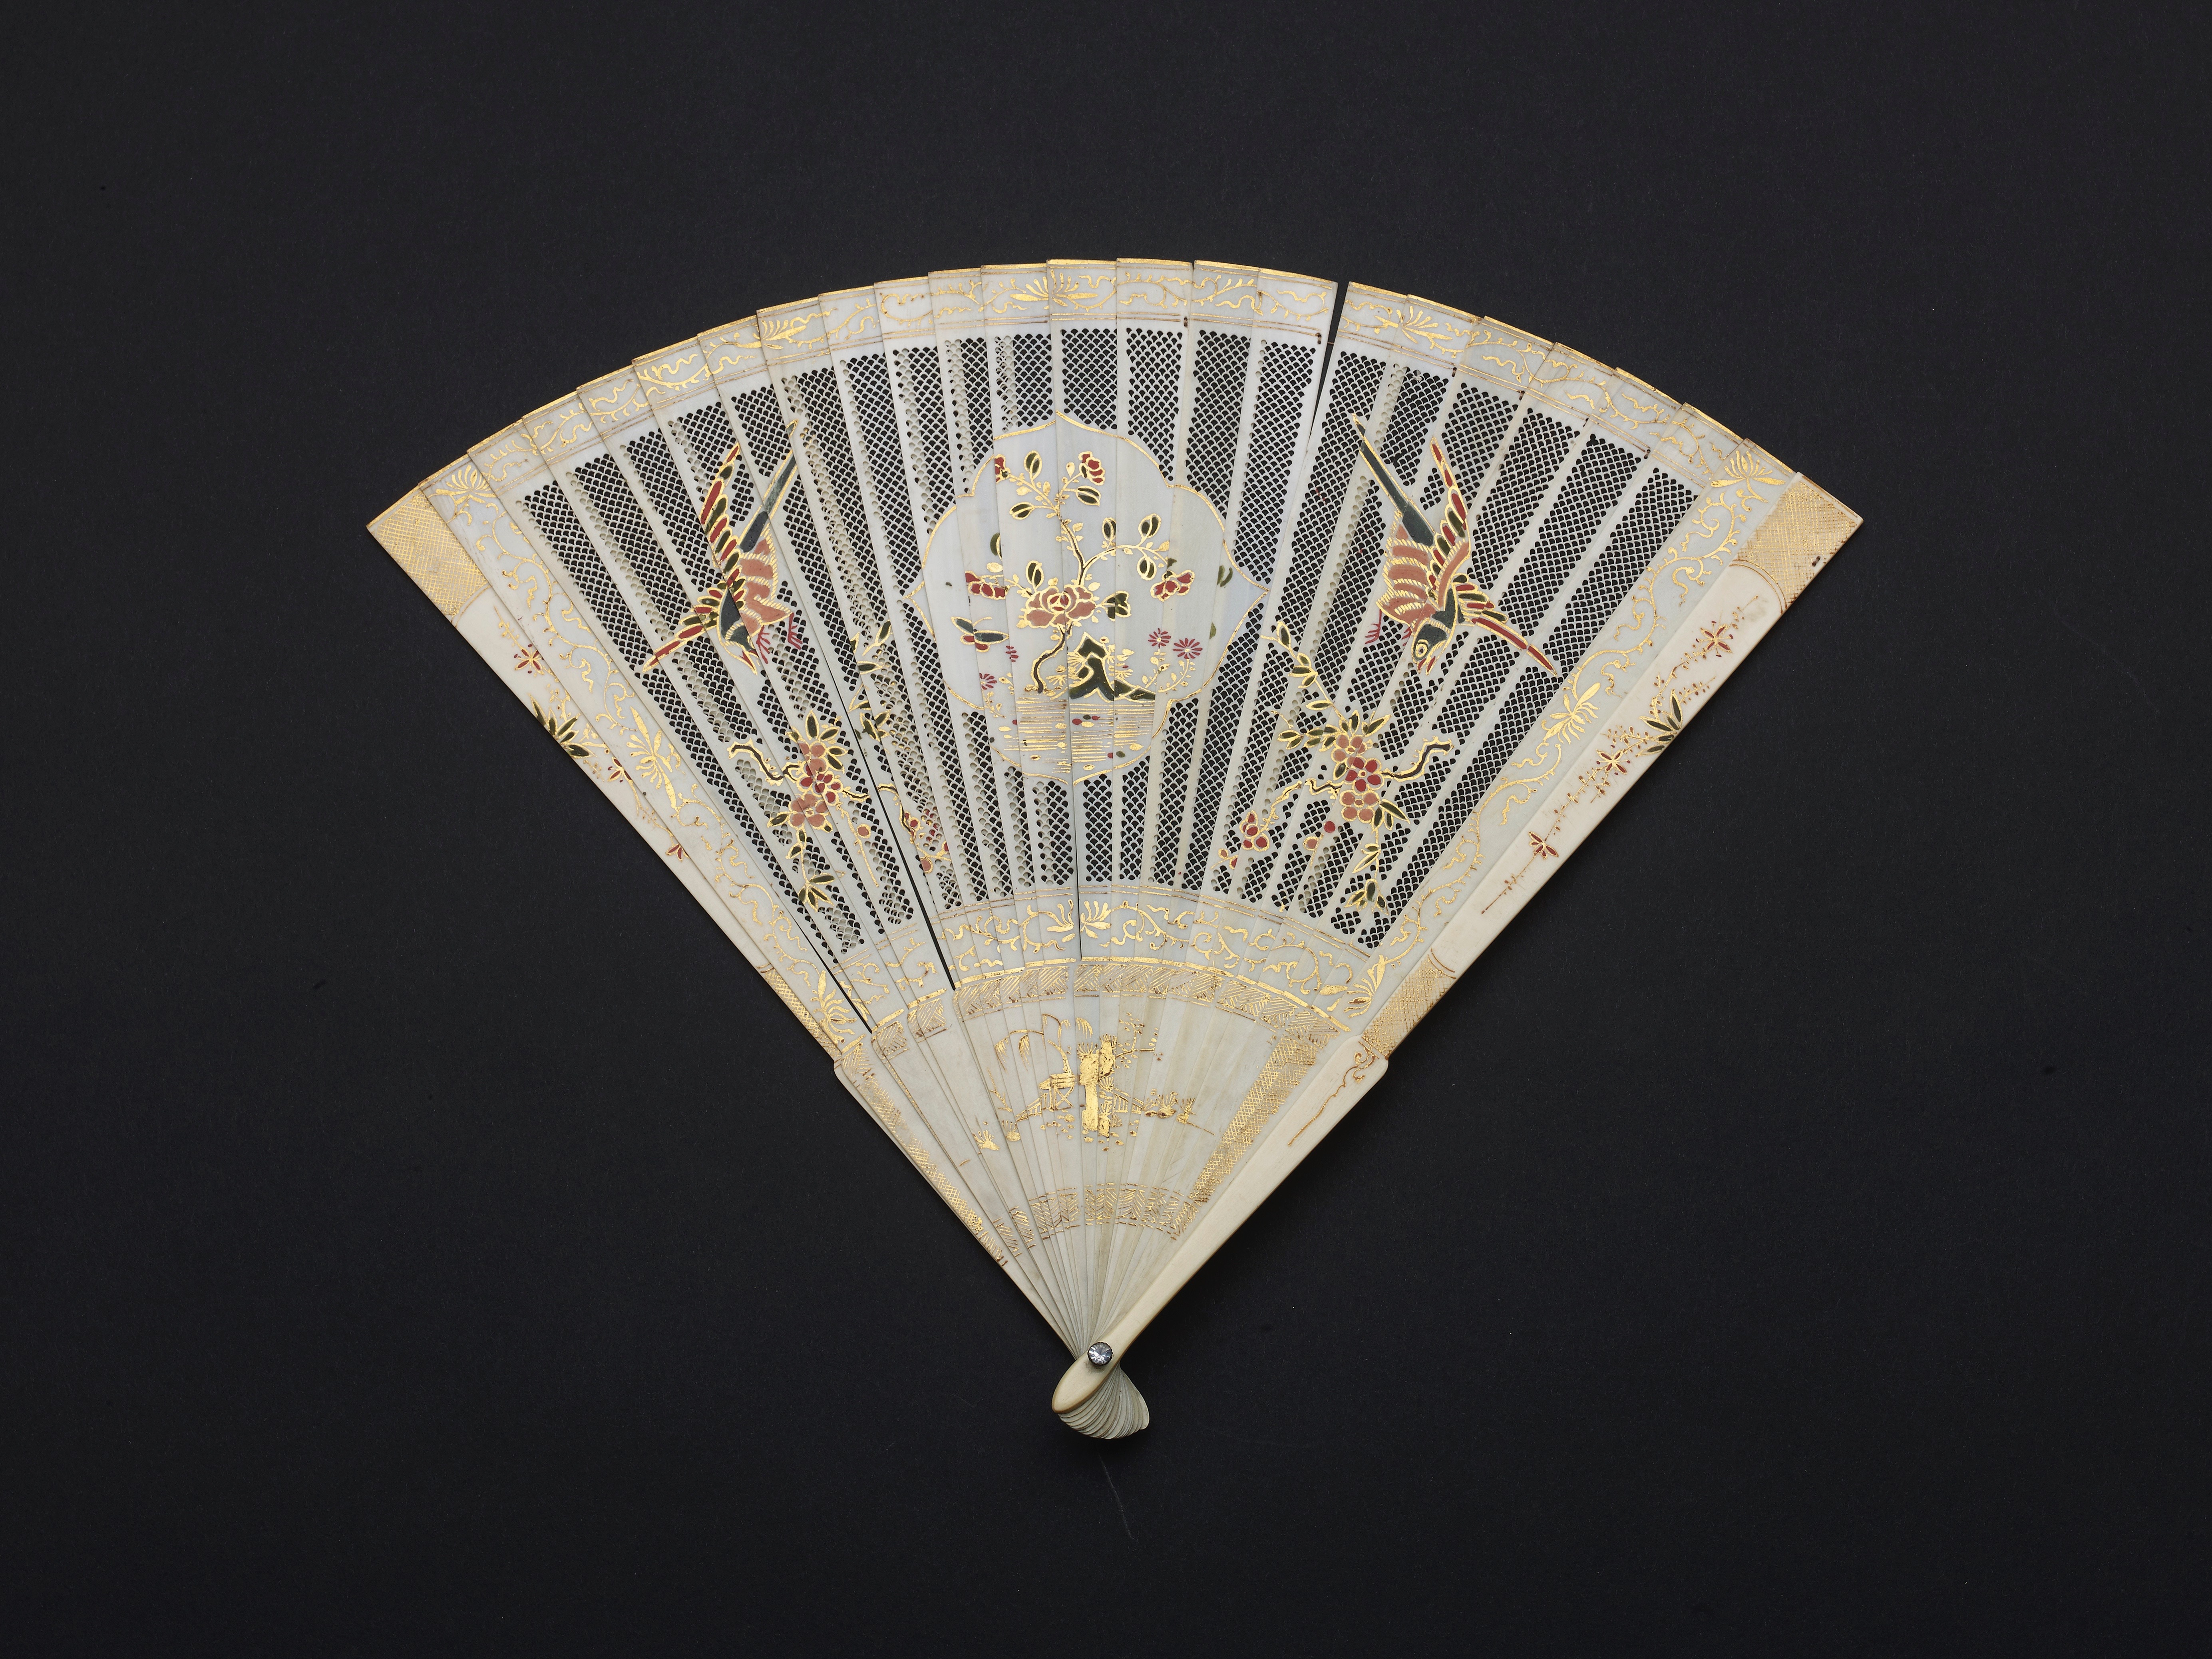 Lot 18 - A CHINESE EXPORT PAINTED IVORY BRISE FAN, QING DYNASTY, KANGXI PERIOD, CIRCA 1700